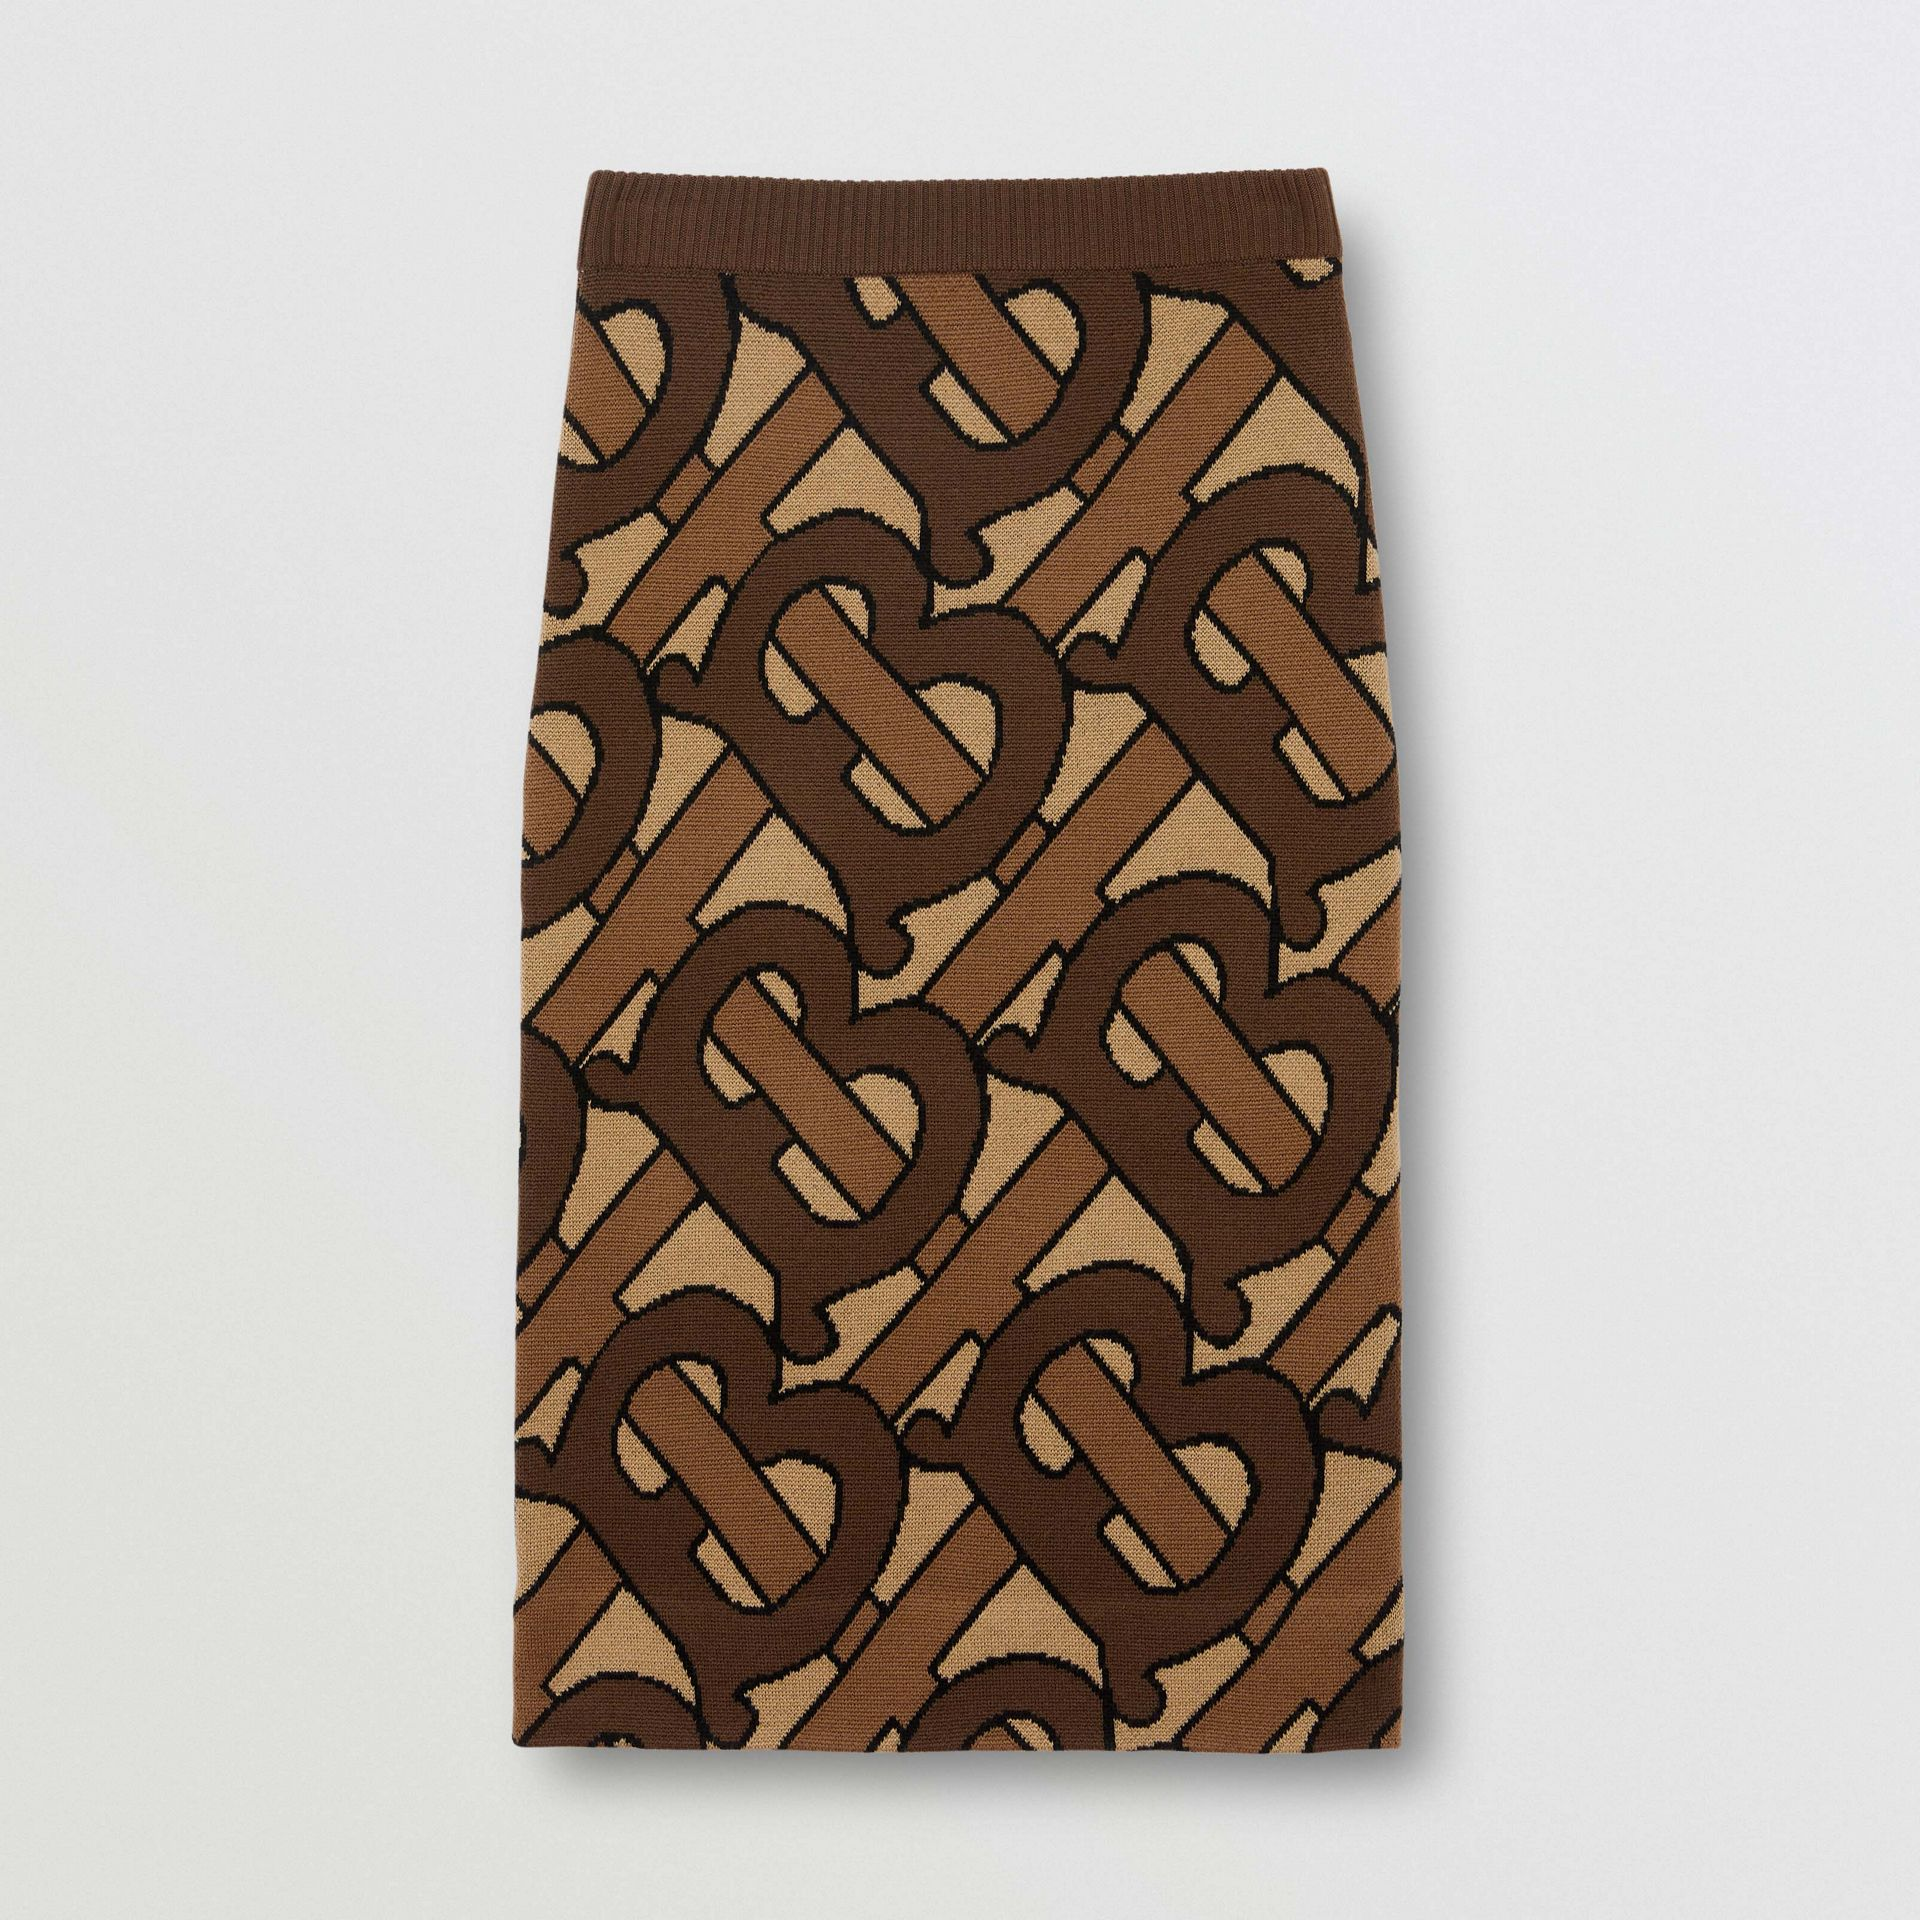 Monogram Intarsia Wool Pencil Skirt in Bridle Brown - Women | Burberry Australia - gallery image 3